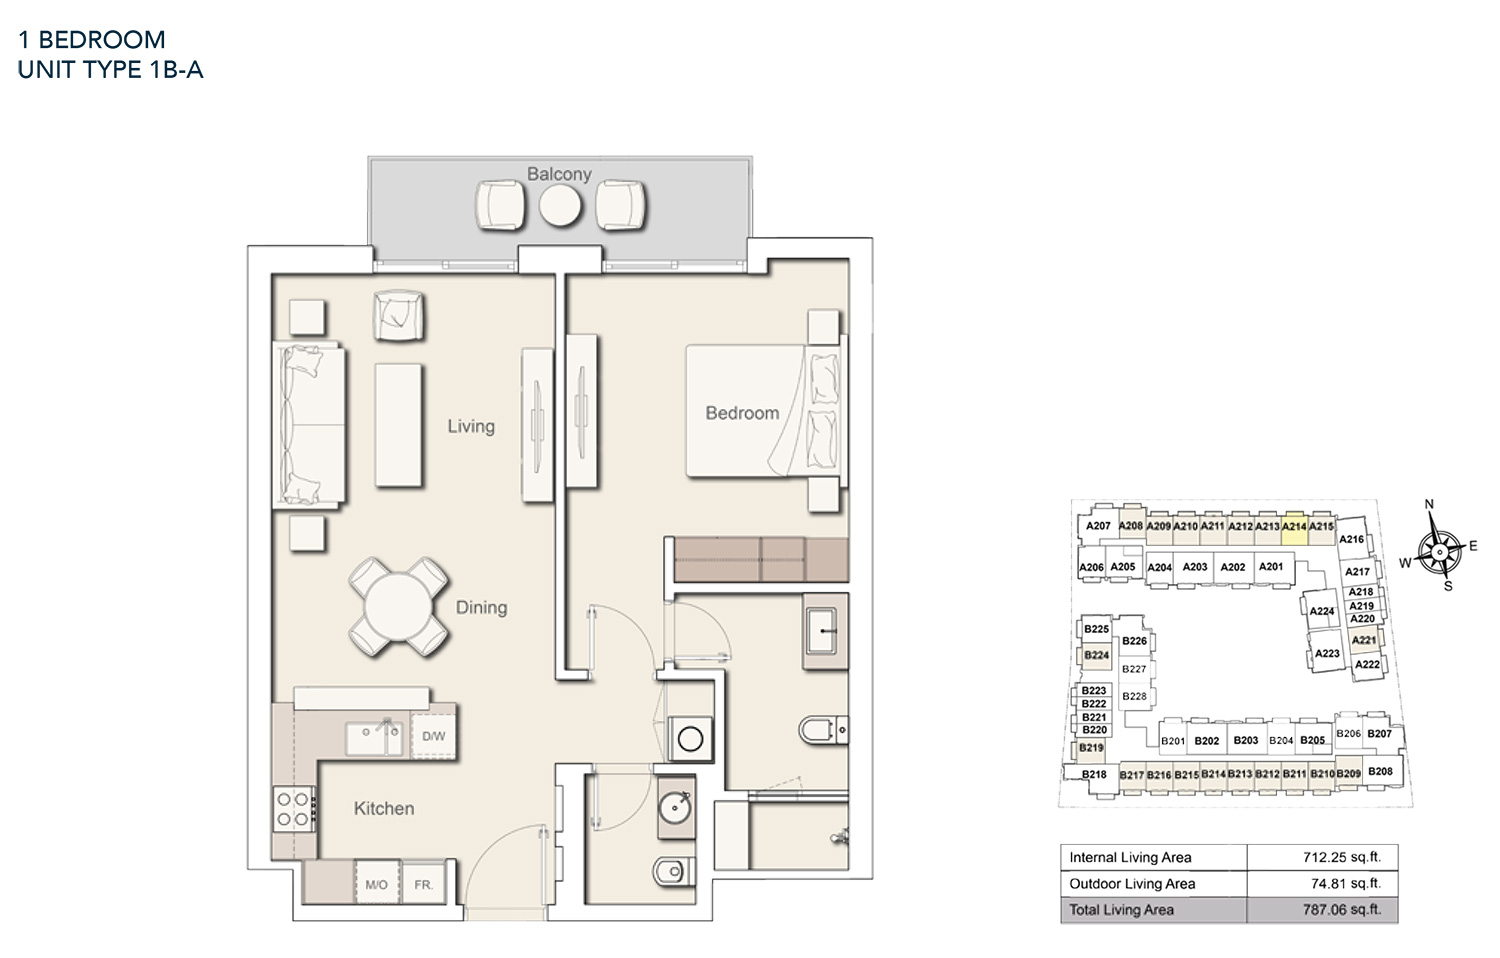 1 Bedroom  Unit Type - 1B A, Size 787.06 sq.ft.